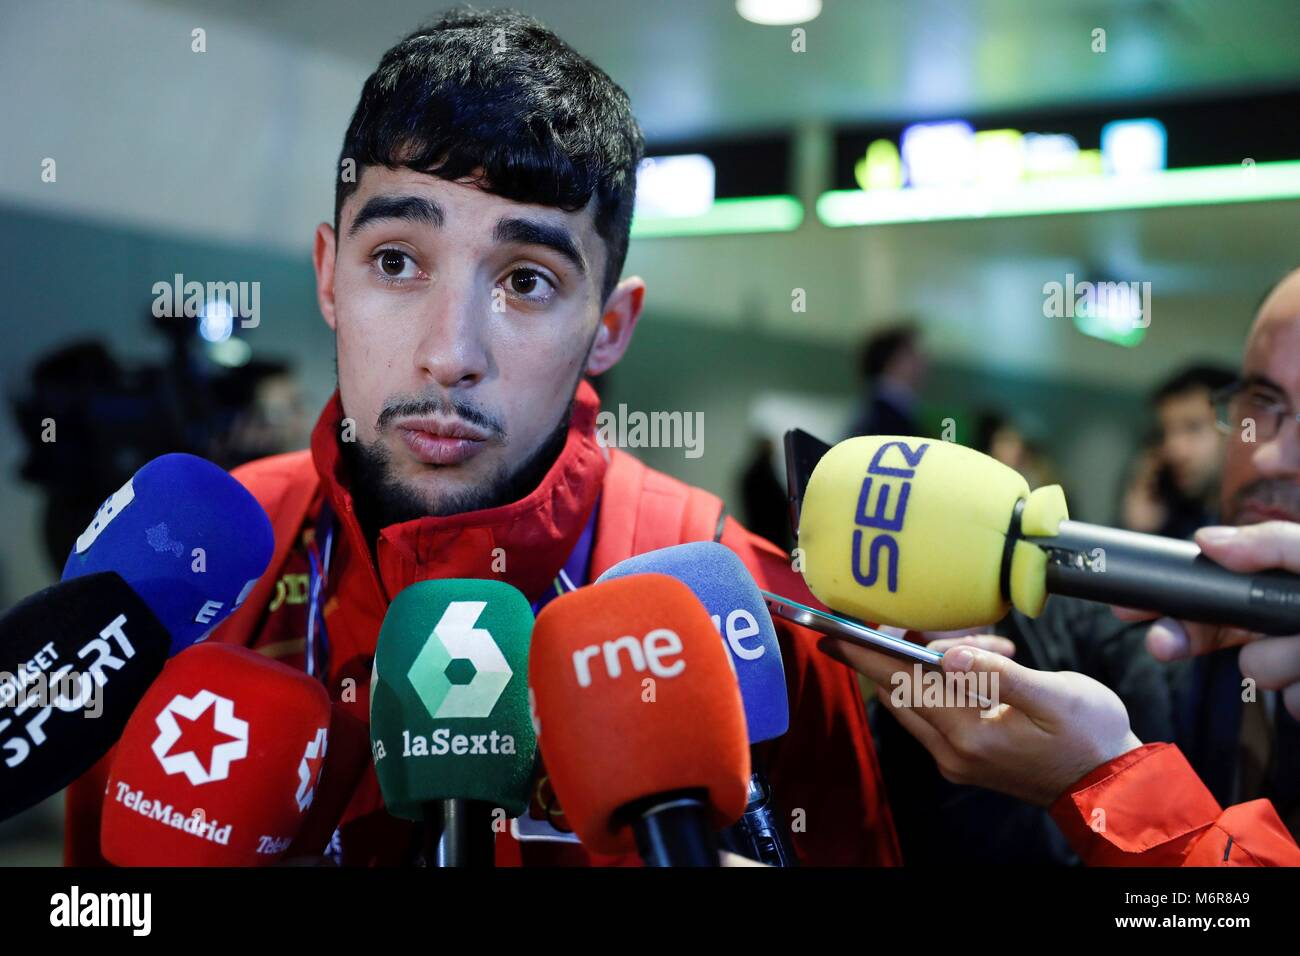 Madrid, Spain. 06th Mar, 2018. Spanish athlete Saul Ordonez (L), bronze medal in the 800 metres, addresses the media - Stock Image